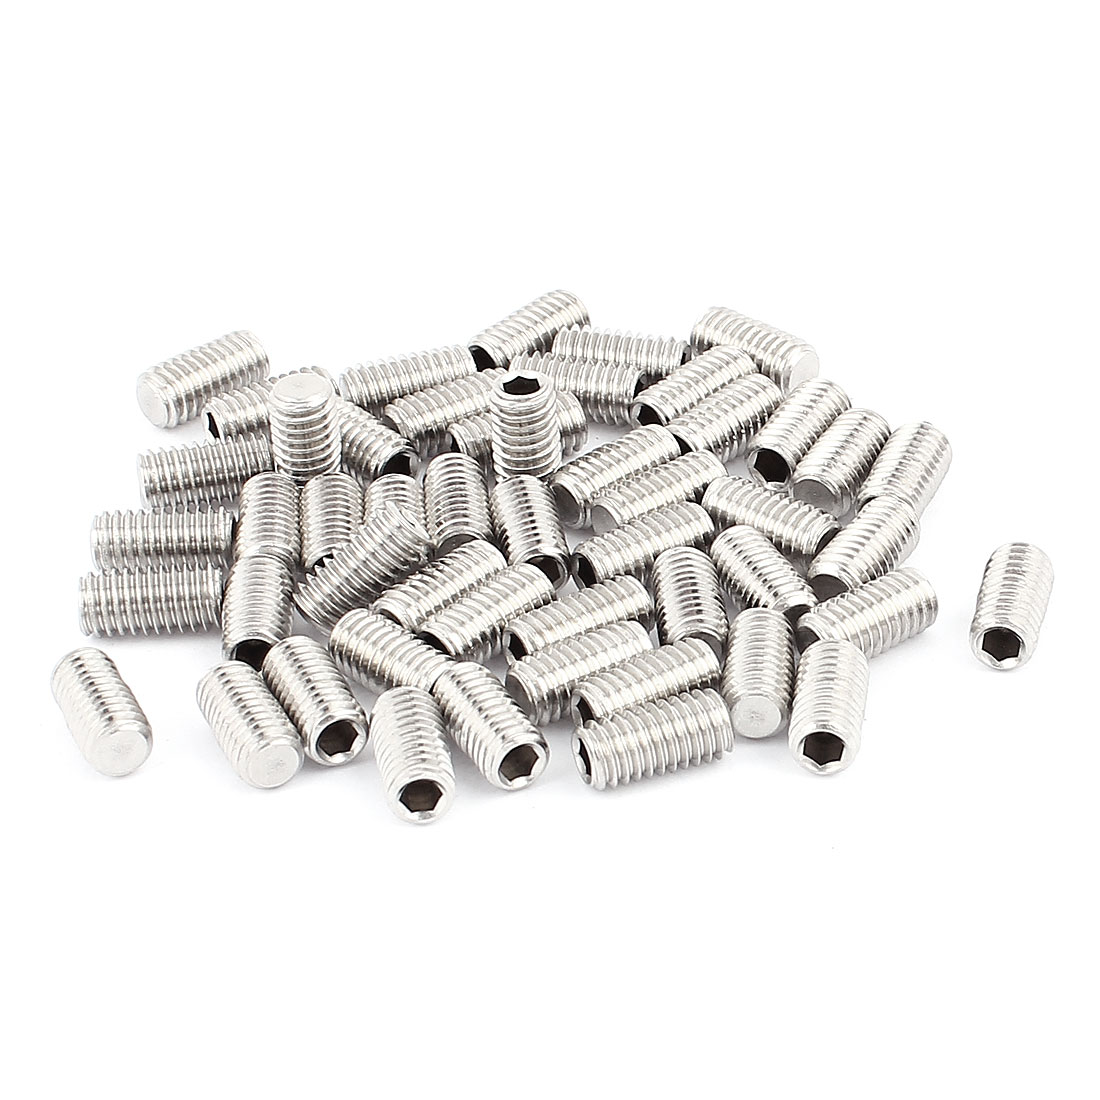 50pcs M6 Thread Flat Point Hex Socket Grub Screw Set Screws